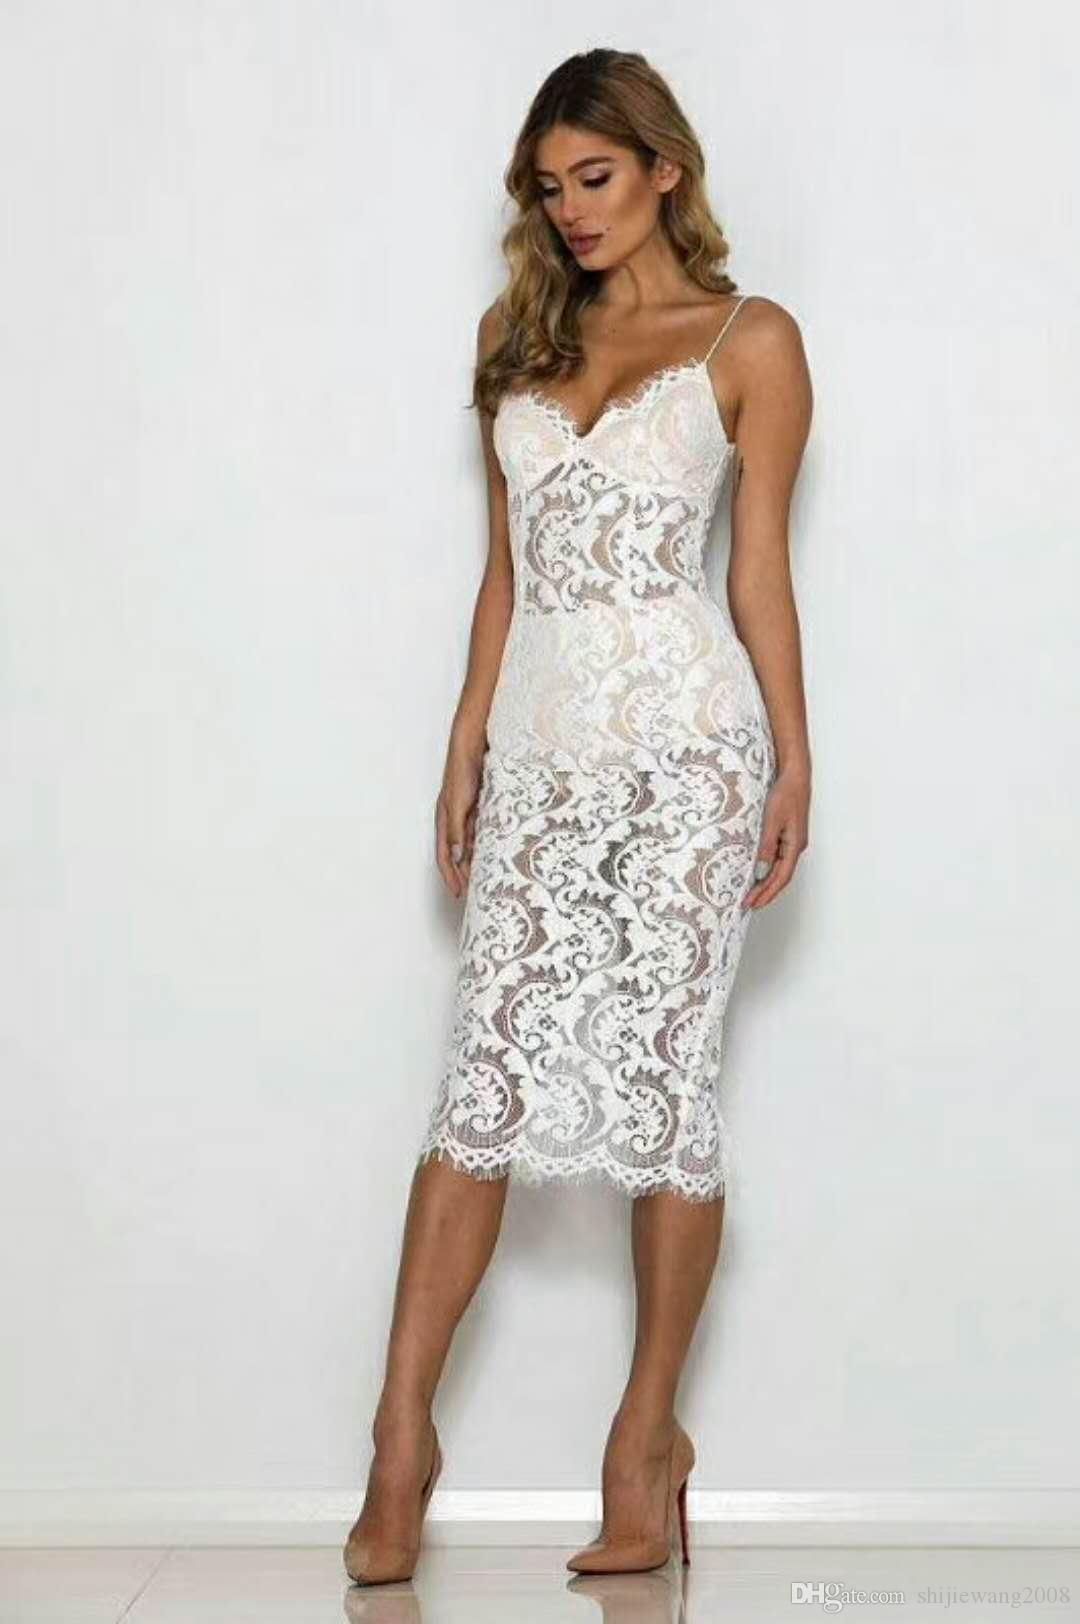 9adaf85a3ae 2019 HOT New Style Woman White Strap Lace Perspective Dress Evening Dress  Skirt, Bandage Skirt, Banquet Dress, Wedding Dress From Shijiewang2008, ...